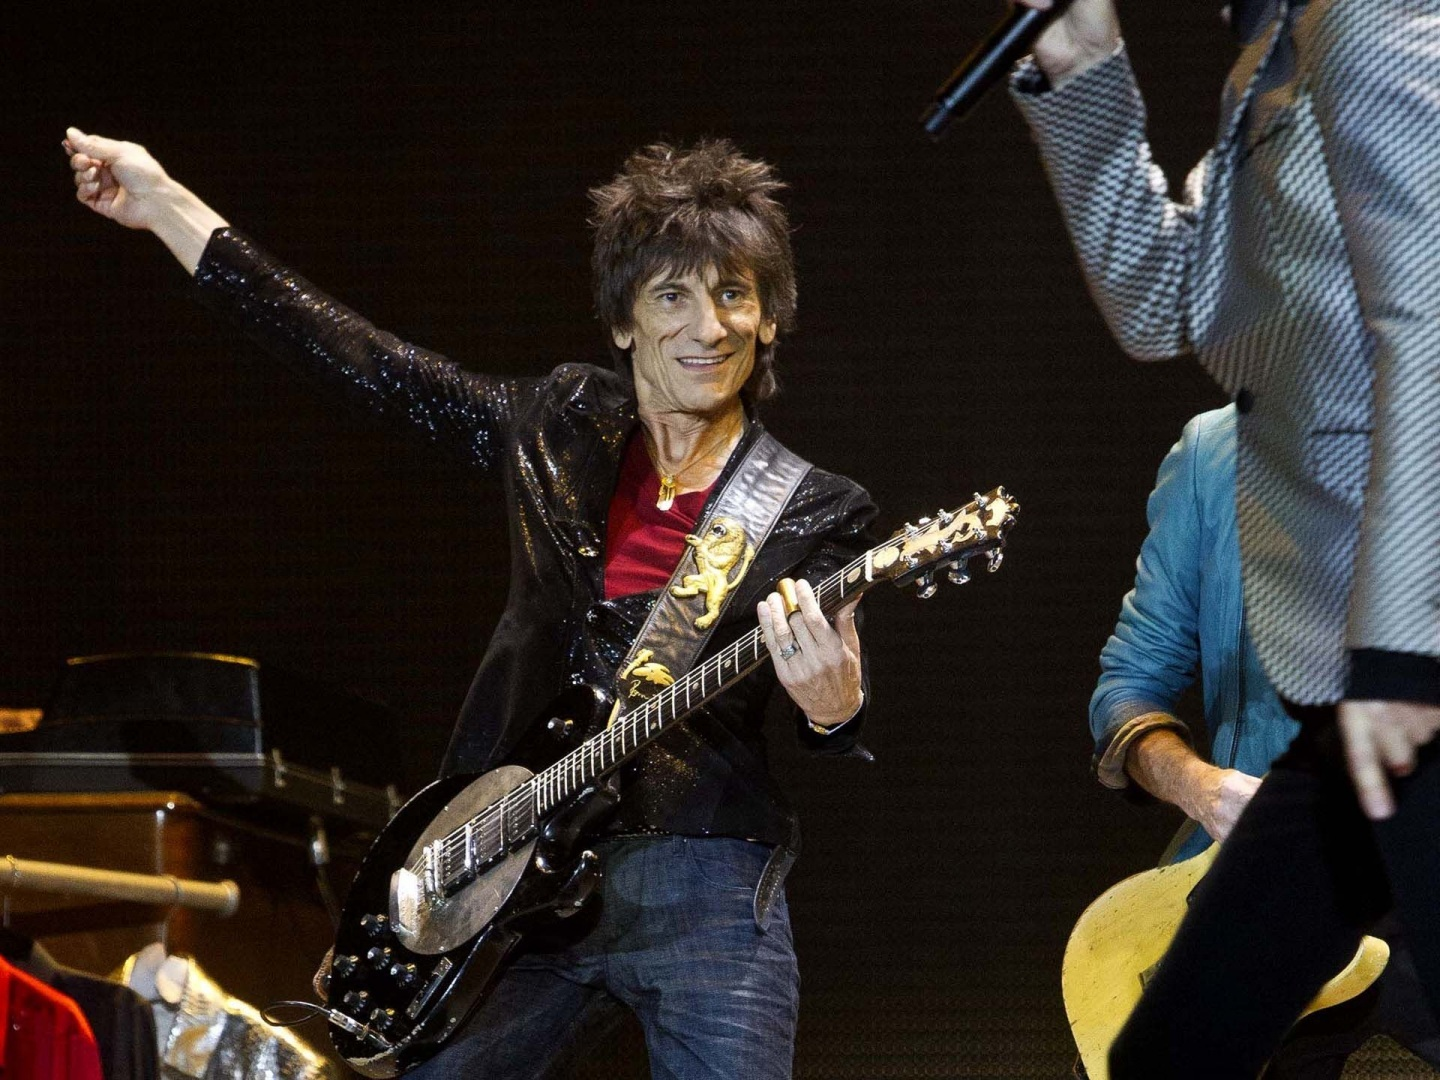 The Rolling Stones Ronnie Wood Wallpaper Ronnie Woods Photo Shared 1440x1080